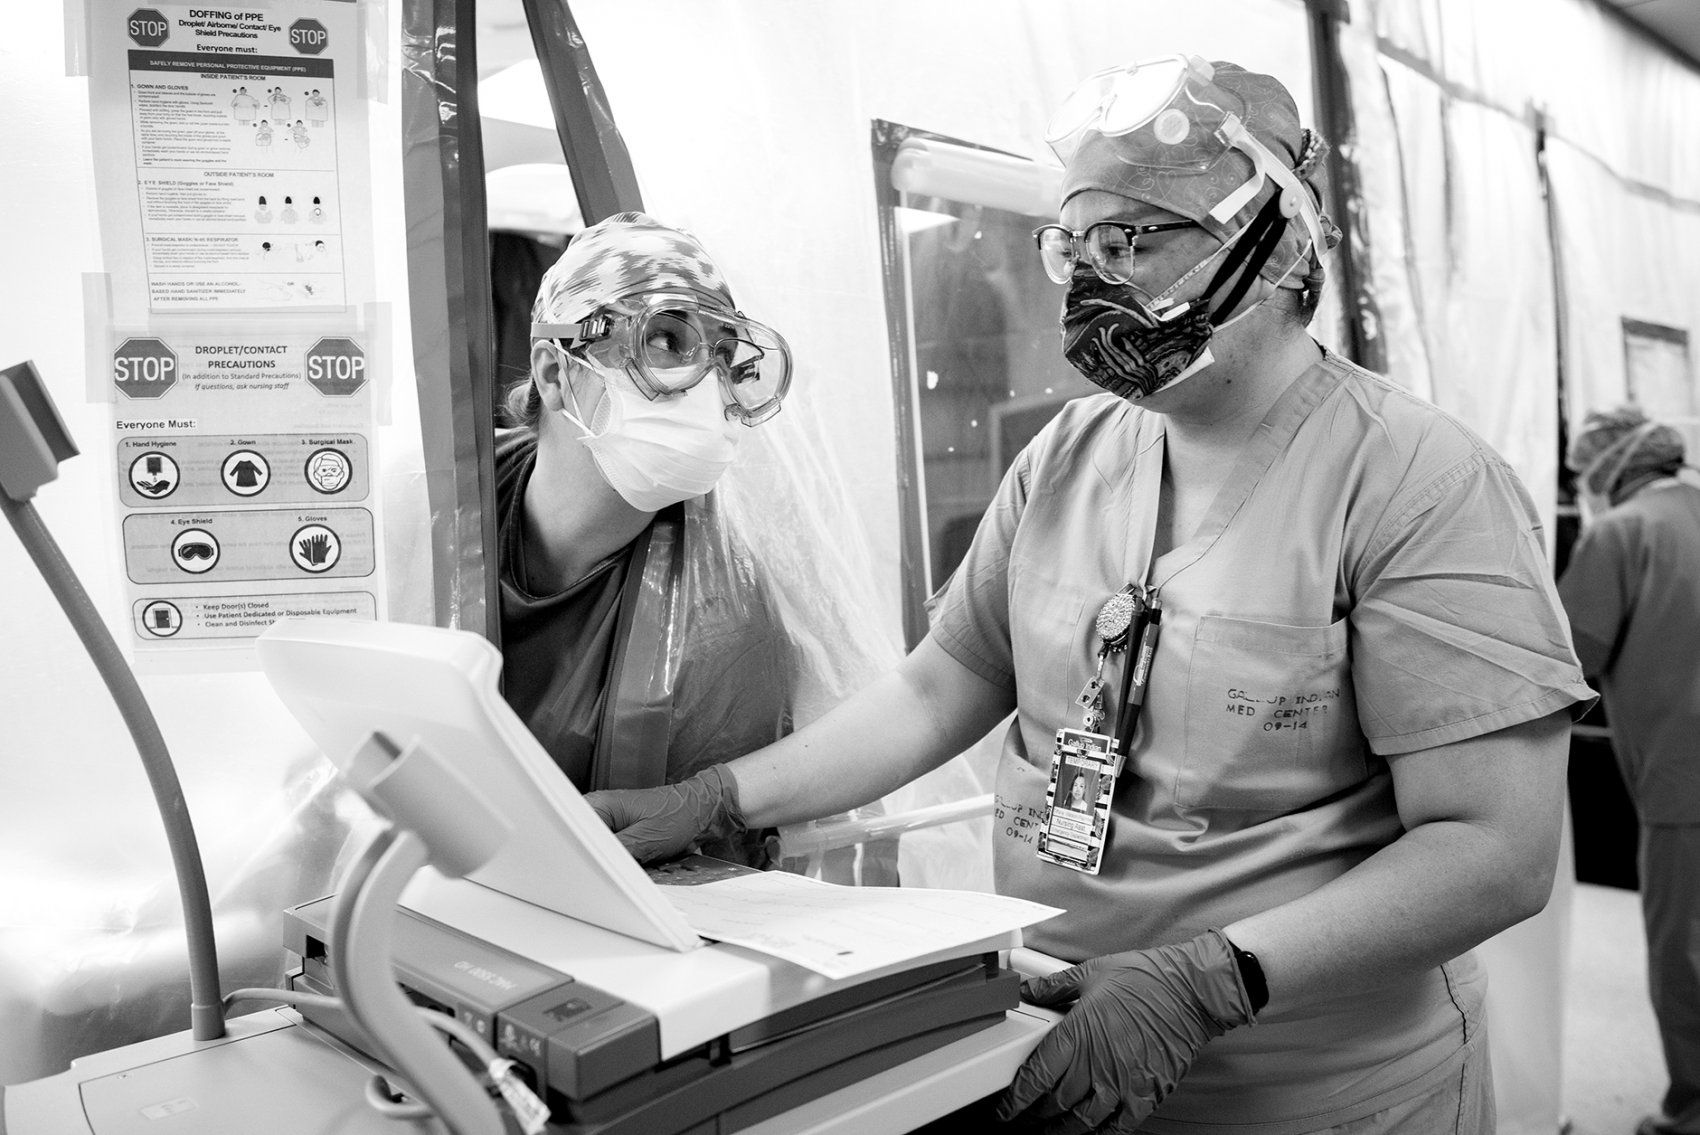 two medical workers talk